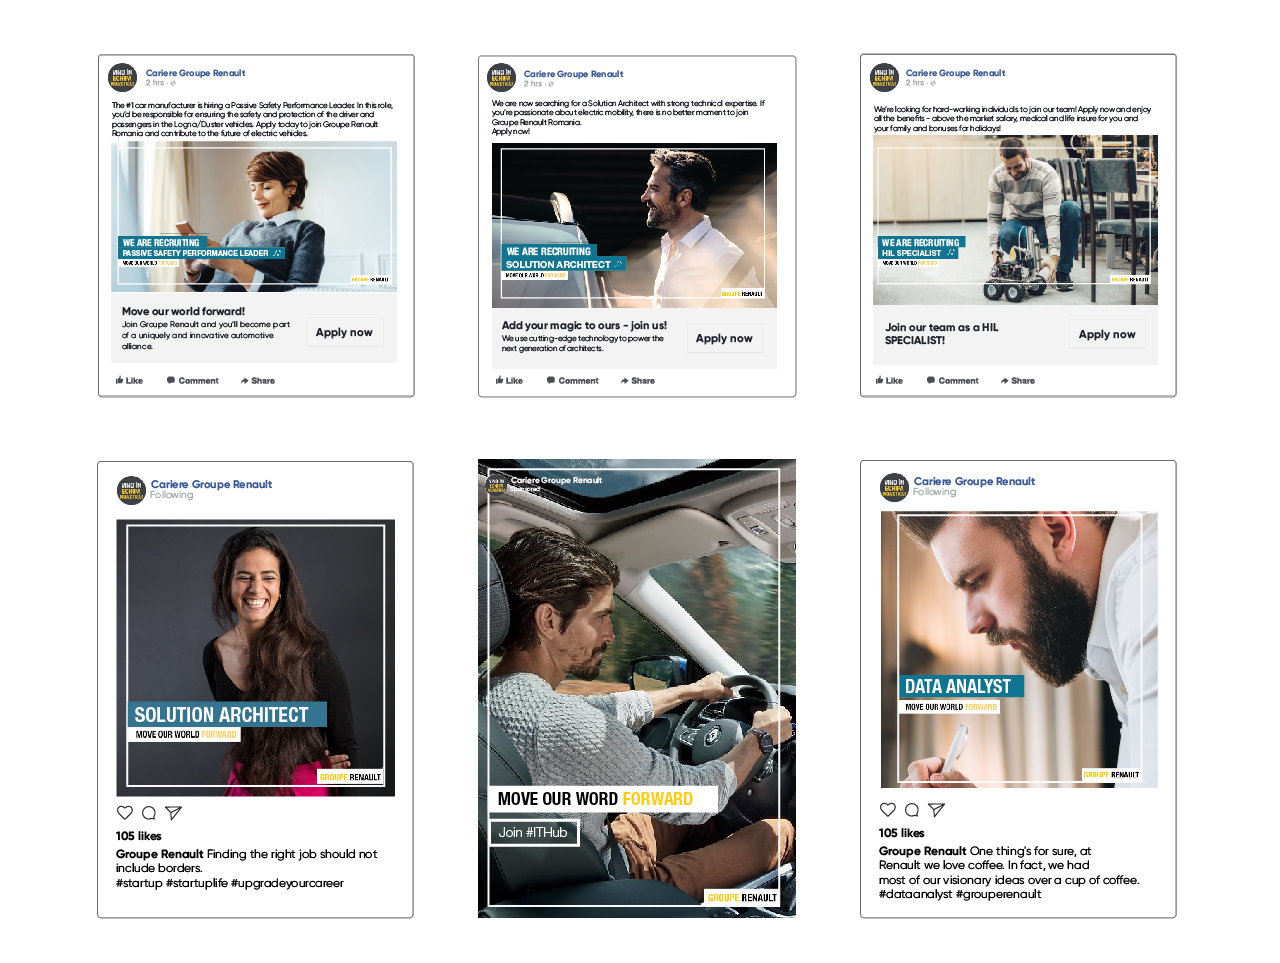 Groupe Renault's Social Media recruitment campaigns